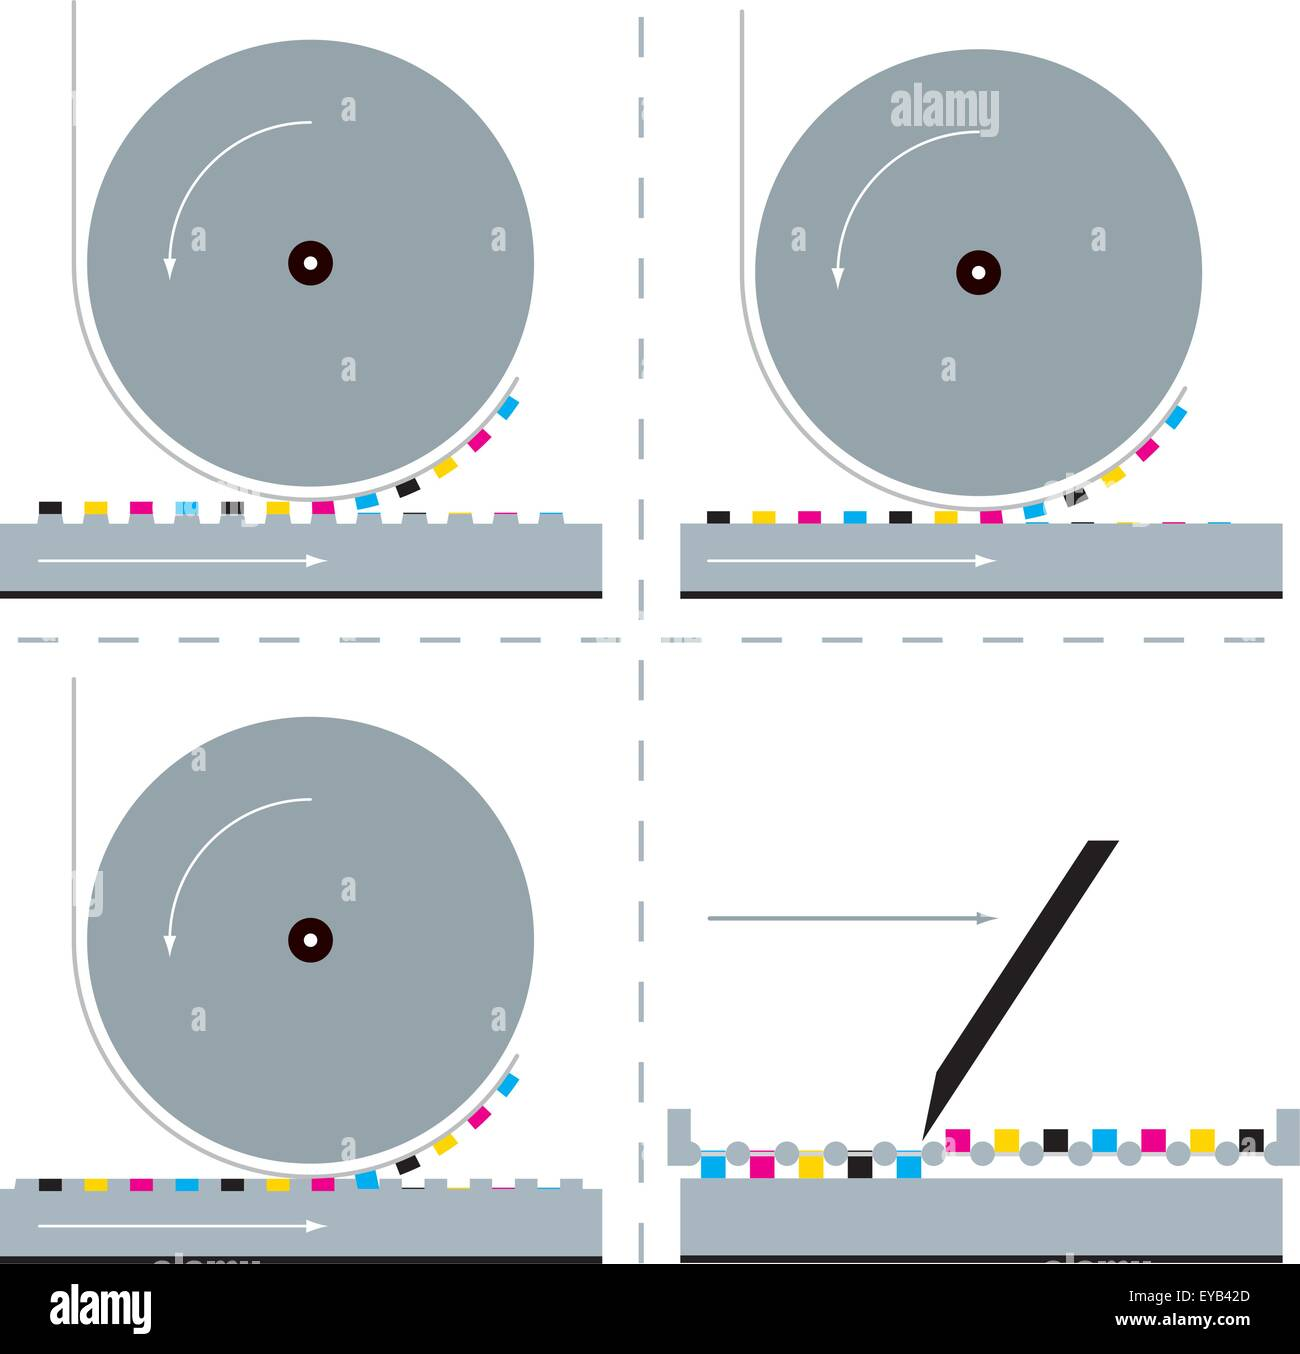 Offset Printing Press Stock Vector Images Alamy Diagram Four Different Processes